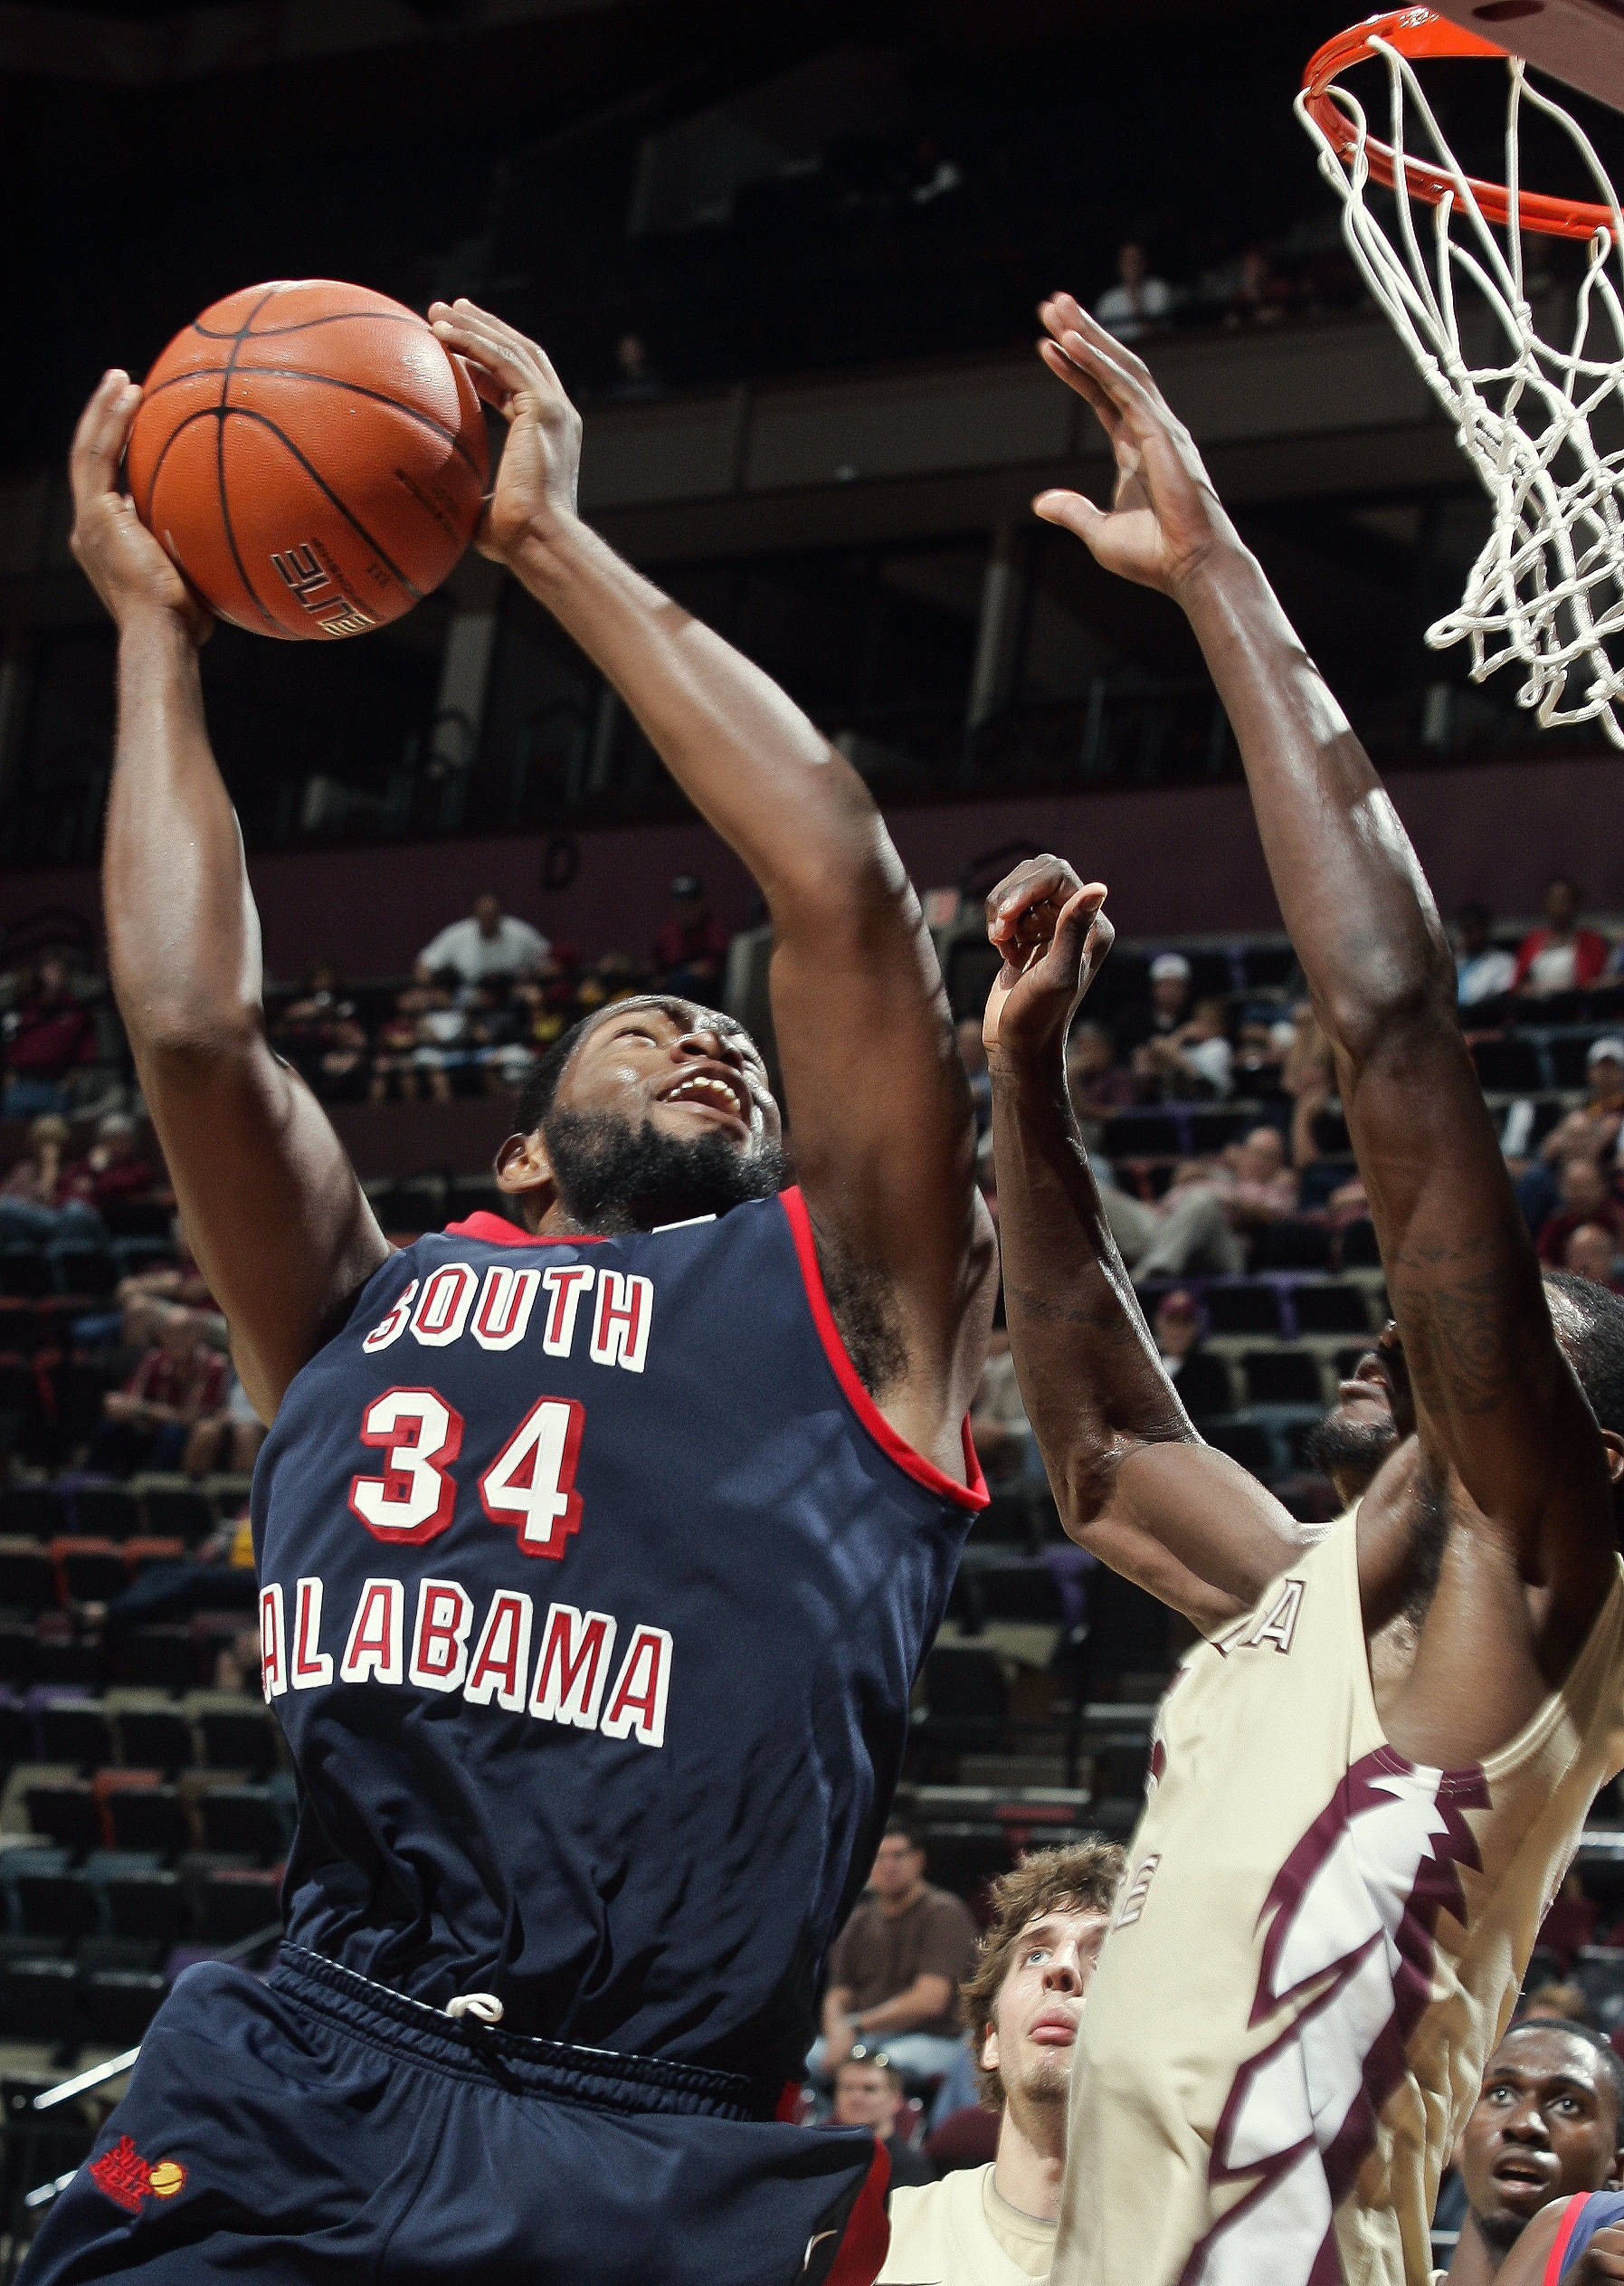 Florida State forward Bernard James, right, defends South Alabama forward Antoine Lundy. (AP Photo/Phil Sears)